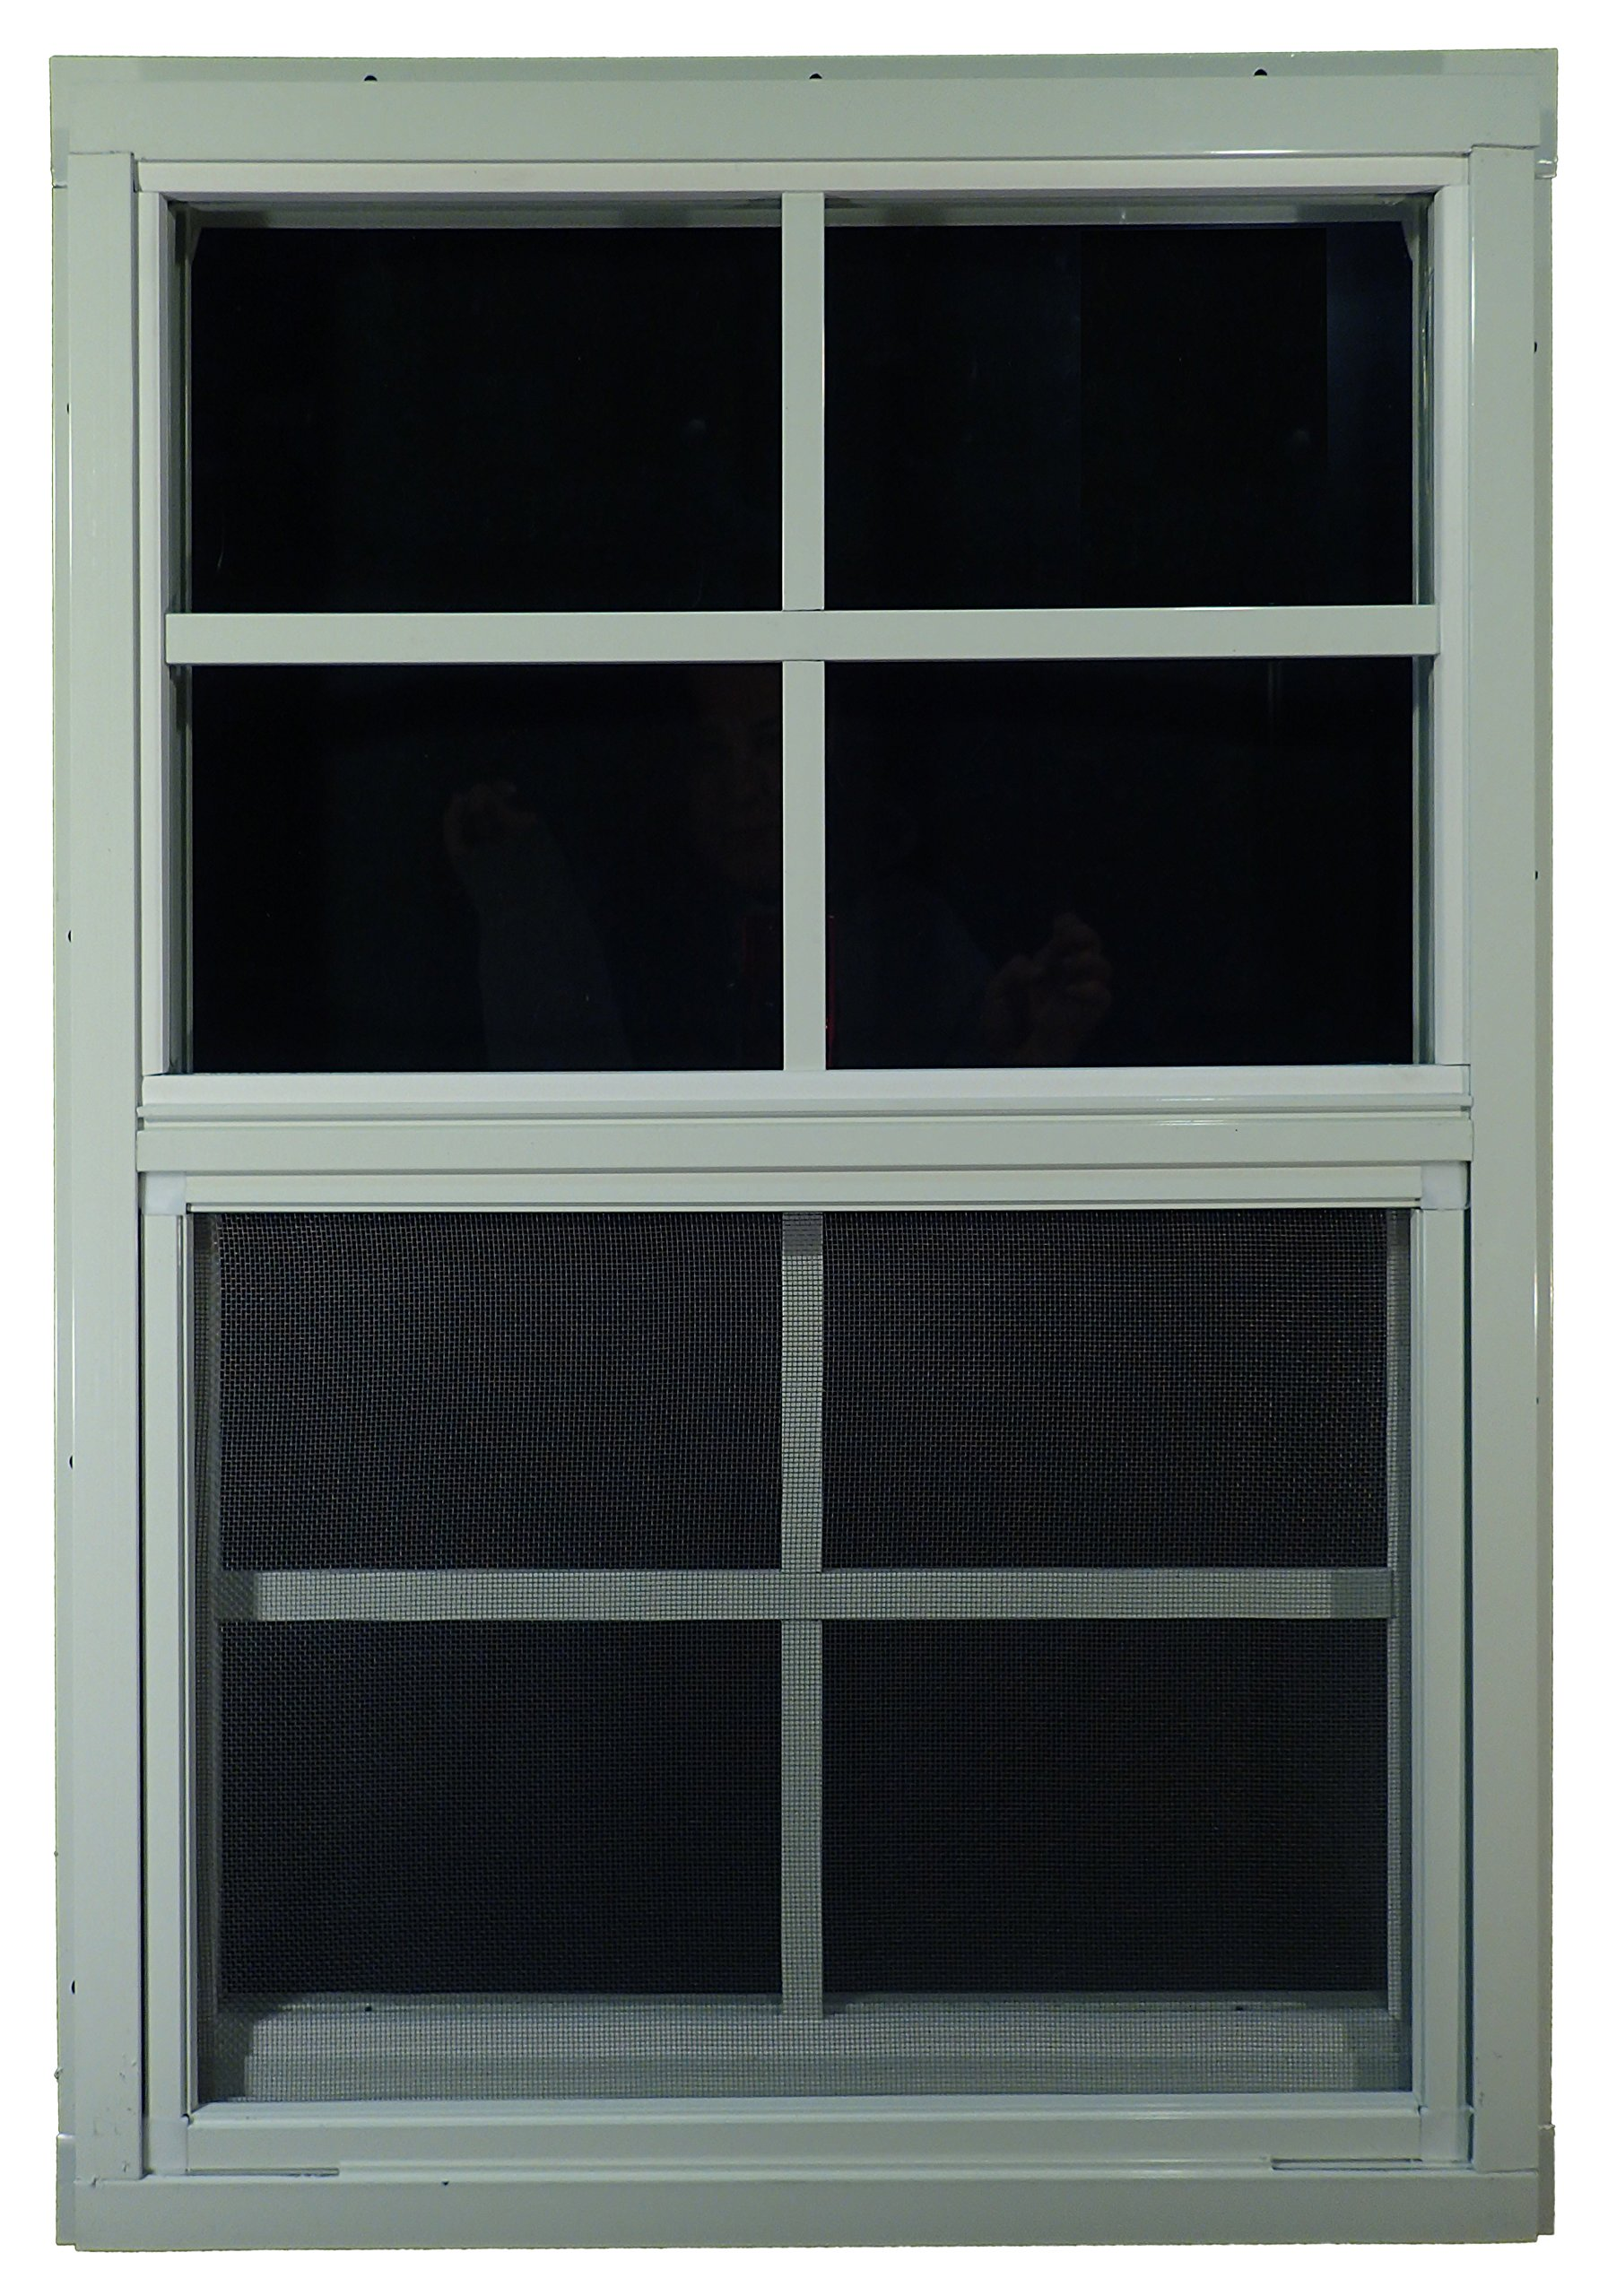 Shed Windows 18'' W x 27'' H - J-Lap - Playhouse Windows (White) by Outdoor Play and Storage